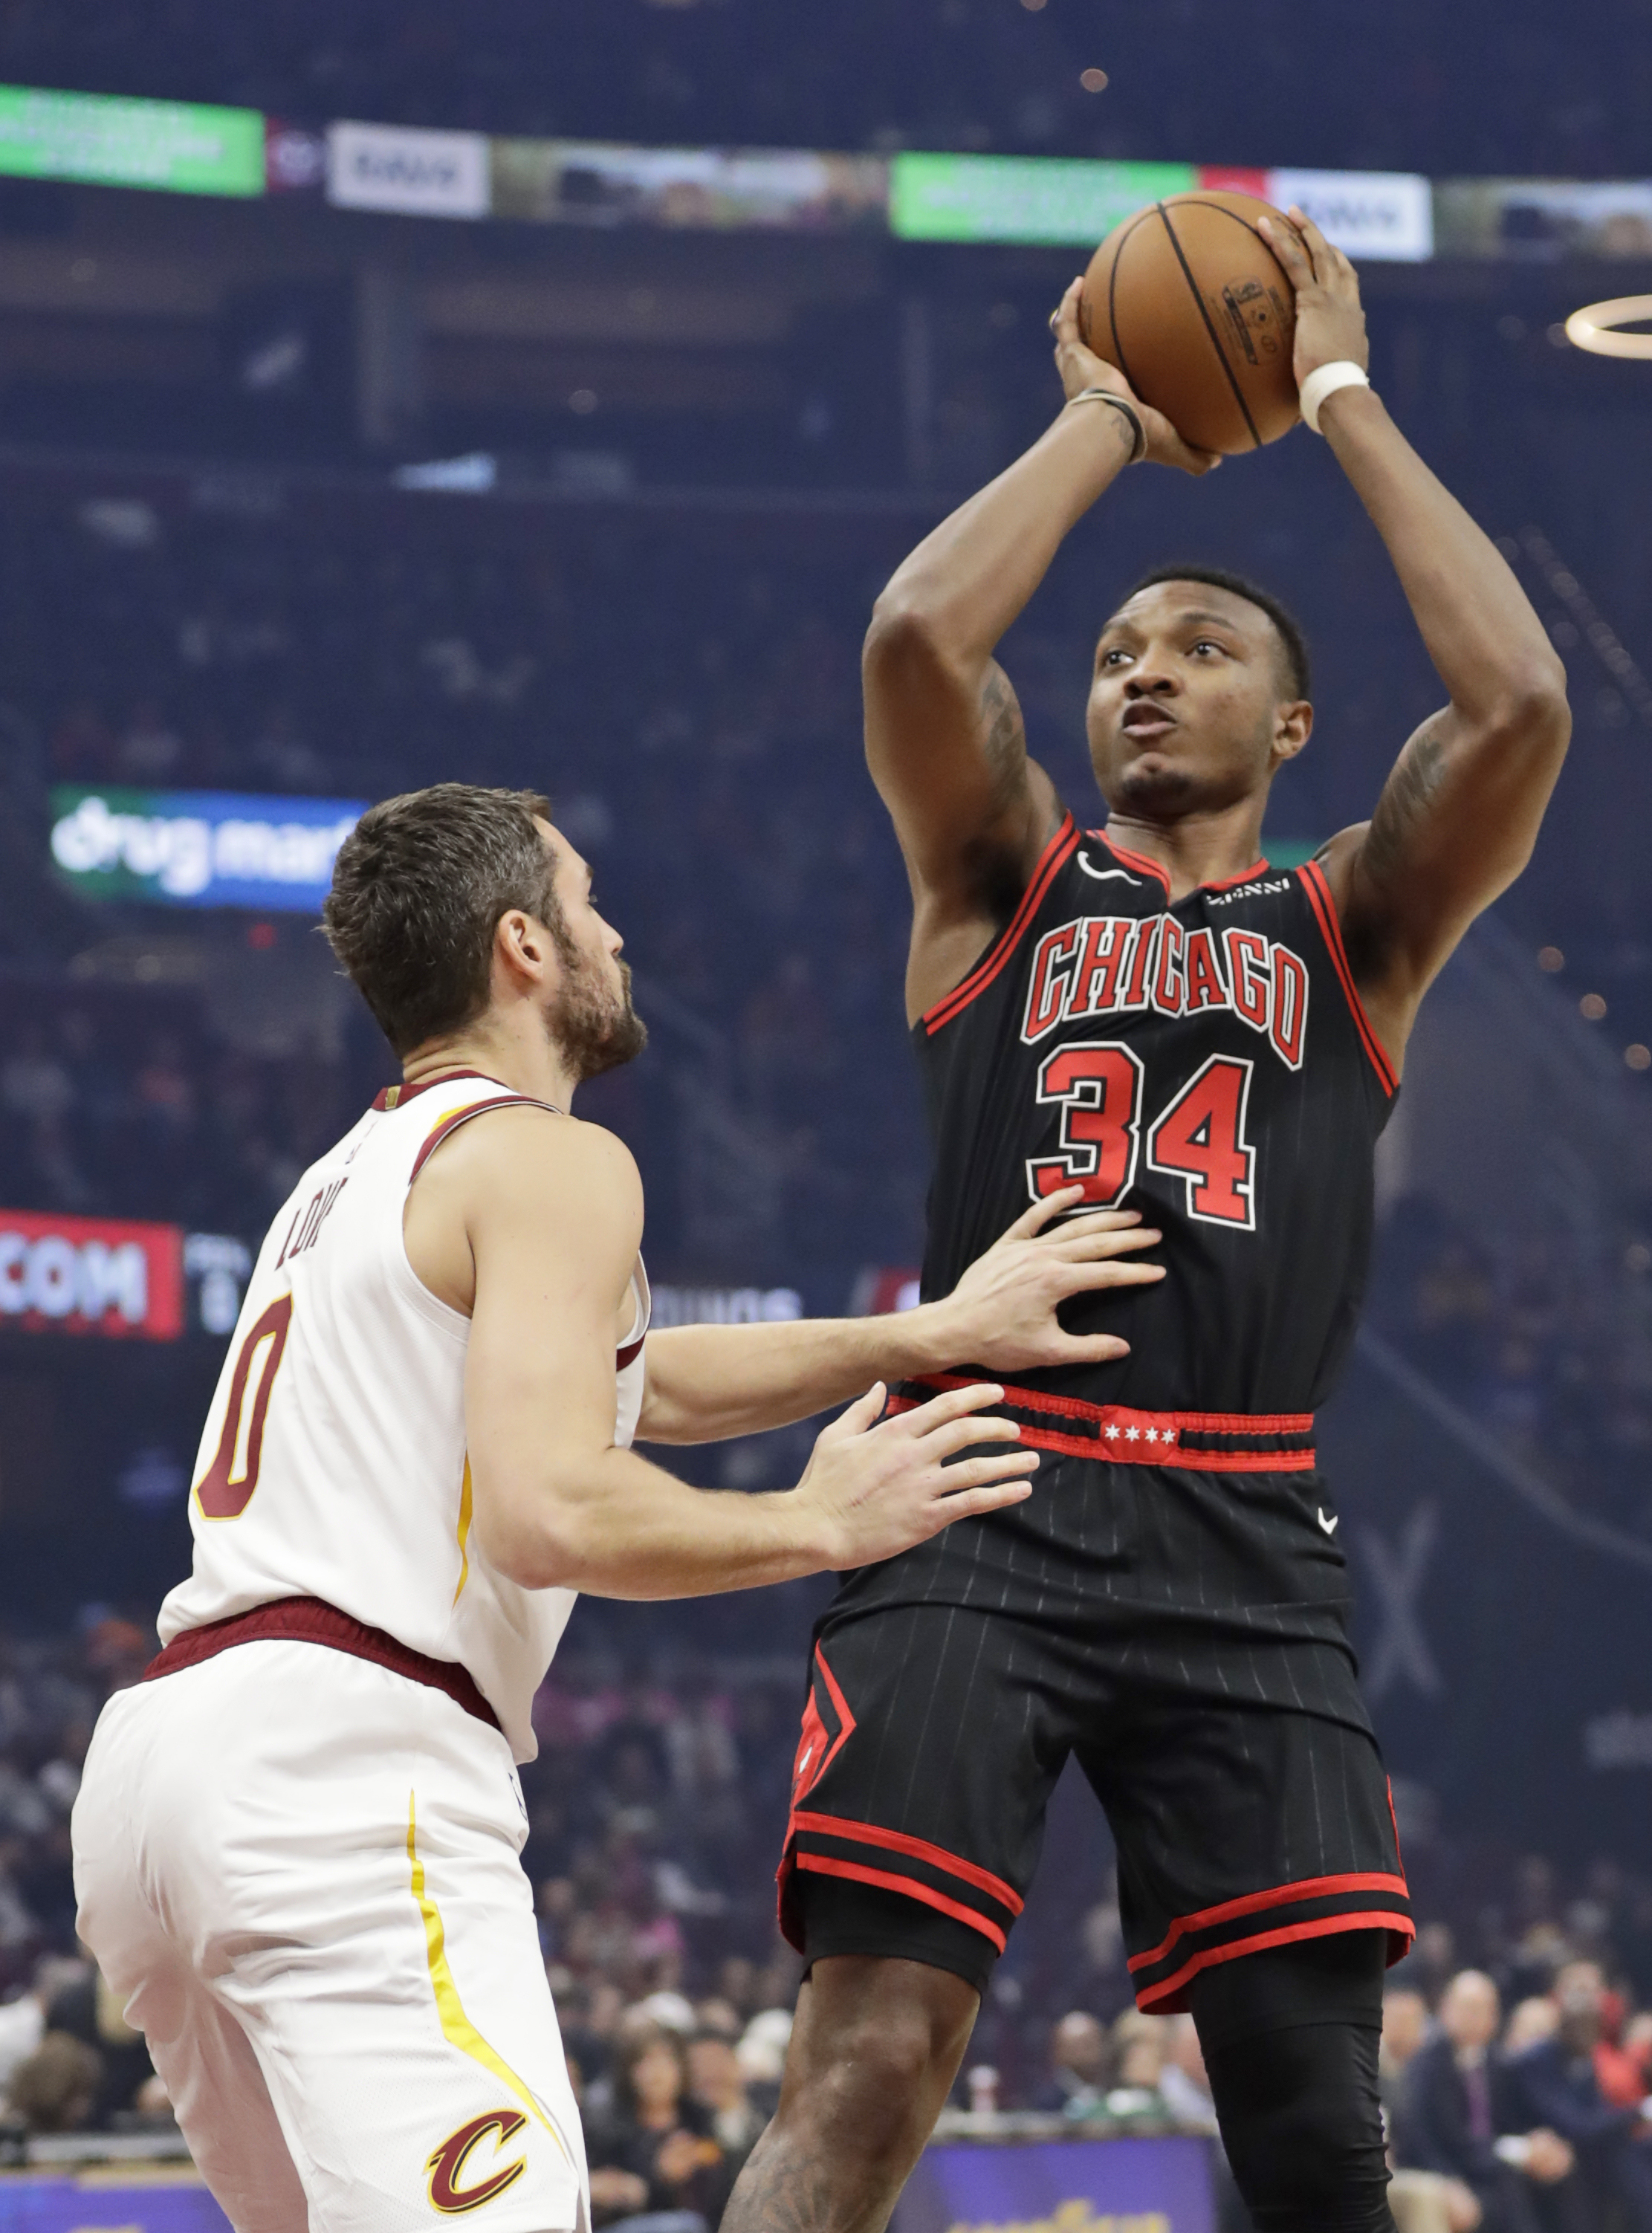 The Bulls' Wendell Carter Jr. shoots over the Cavaliers' Kevin Love during Wednesday's game in Cleveland.